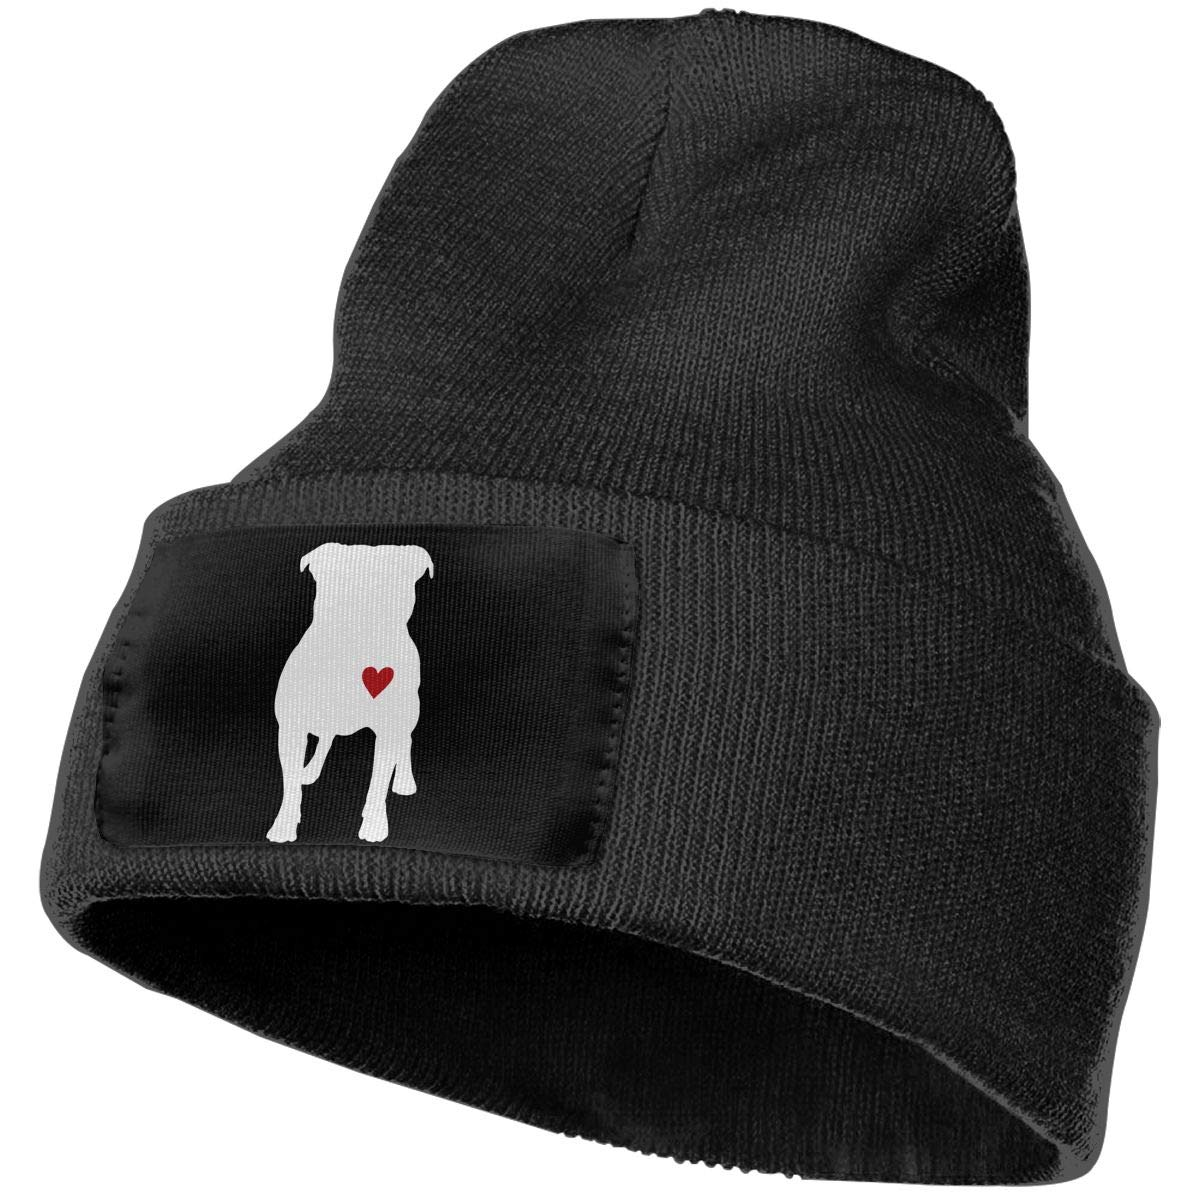 Mens and Womens 100/% Acrylic Knit Hat Cap Pitbull Silhouette Soft Skull Cap